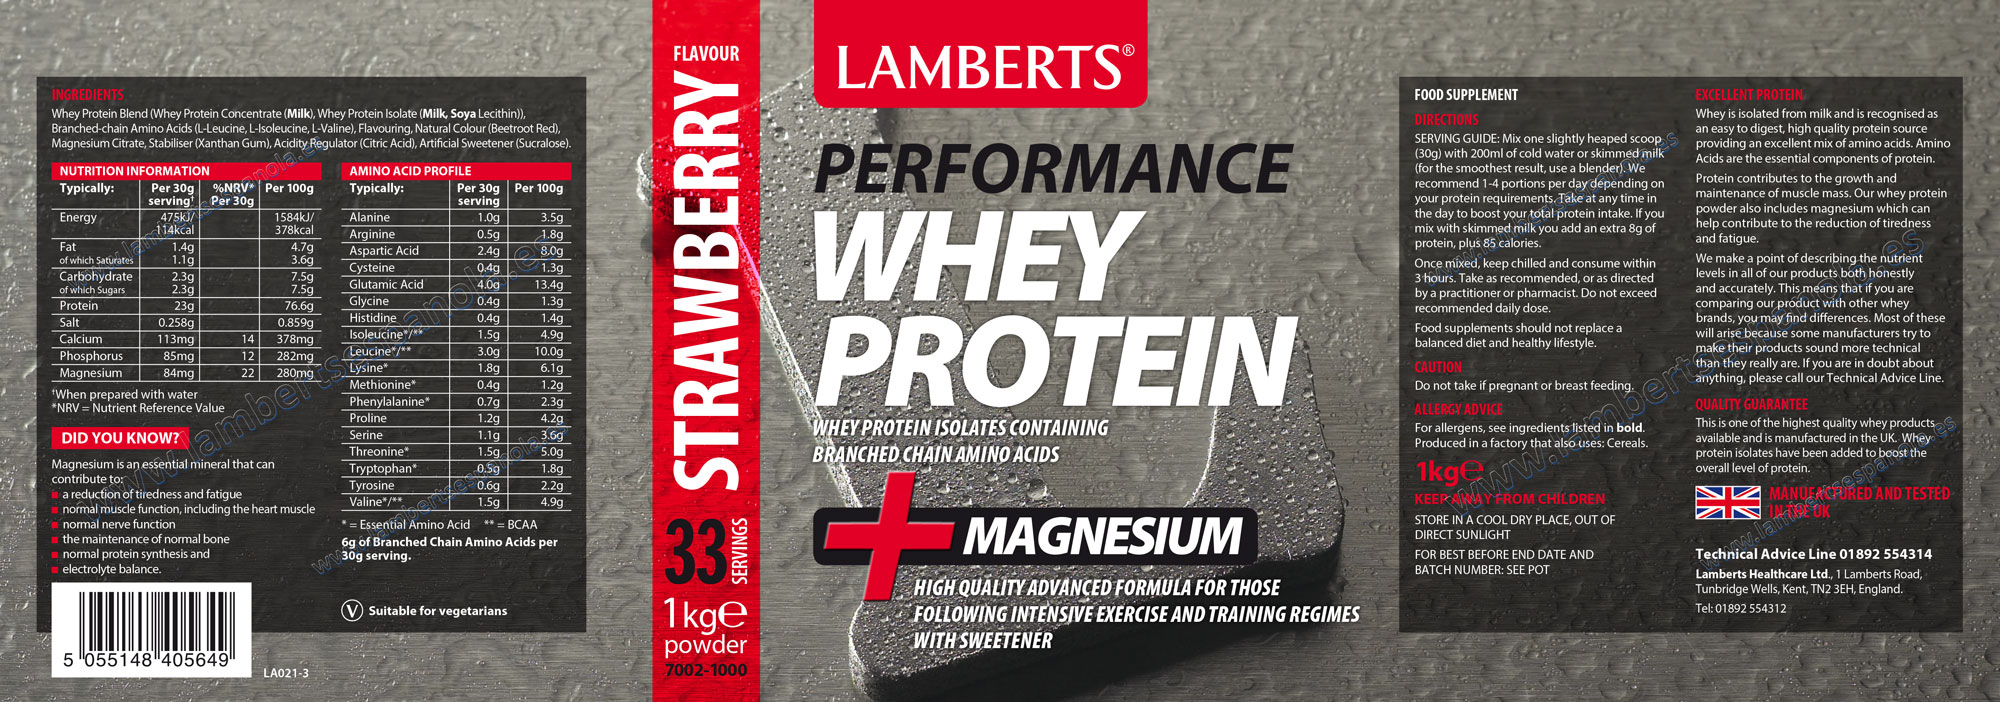 Lamberts Whey Protein strawerry-Product Label